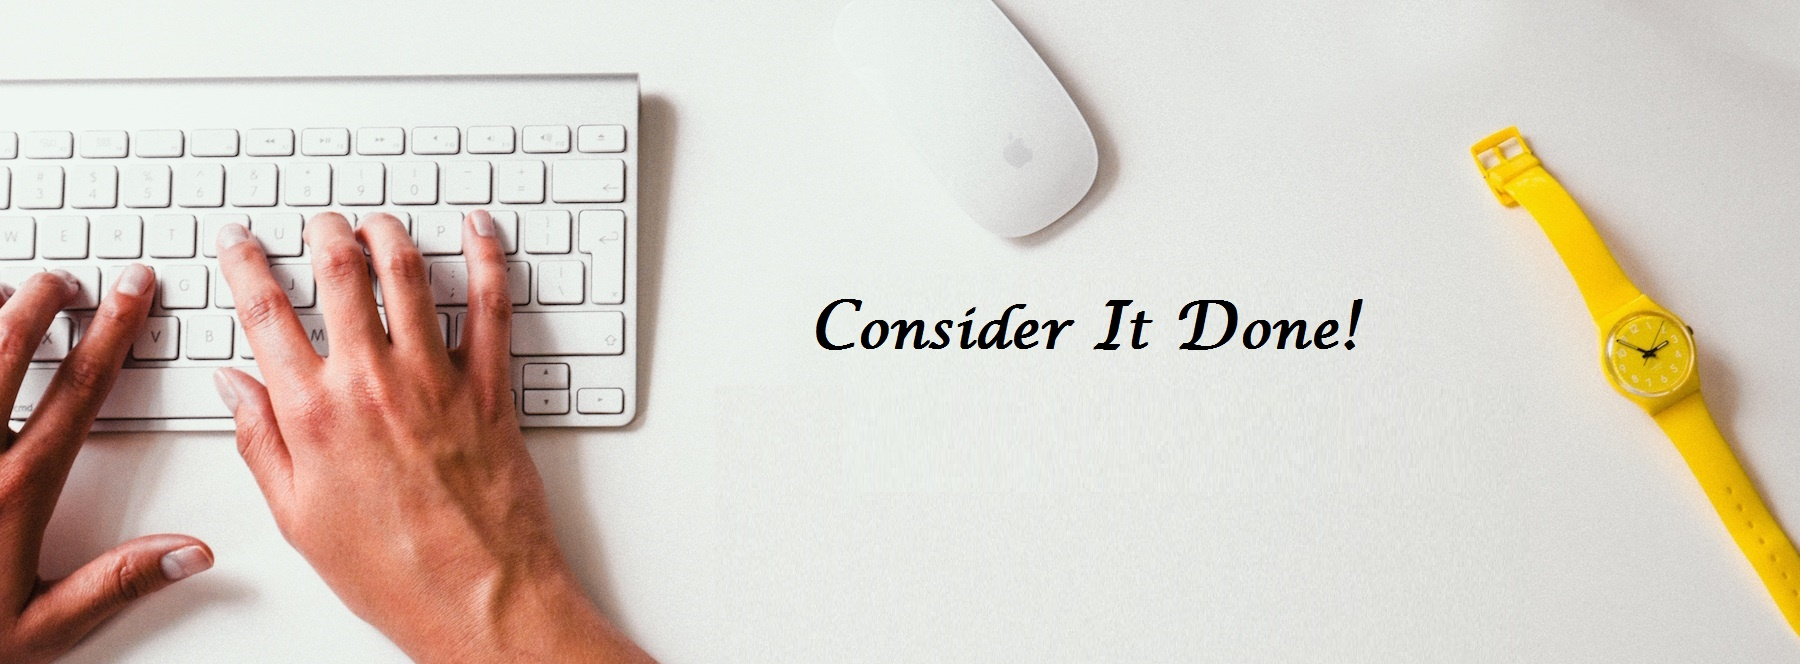 consider-it-done-allbizweb-dot-com